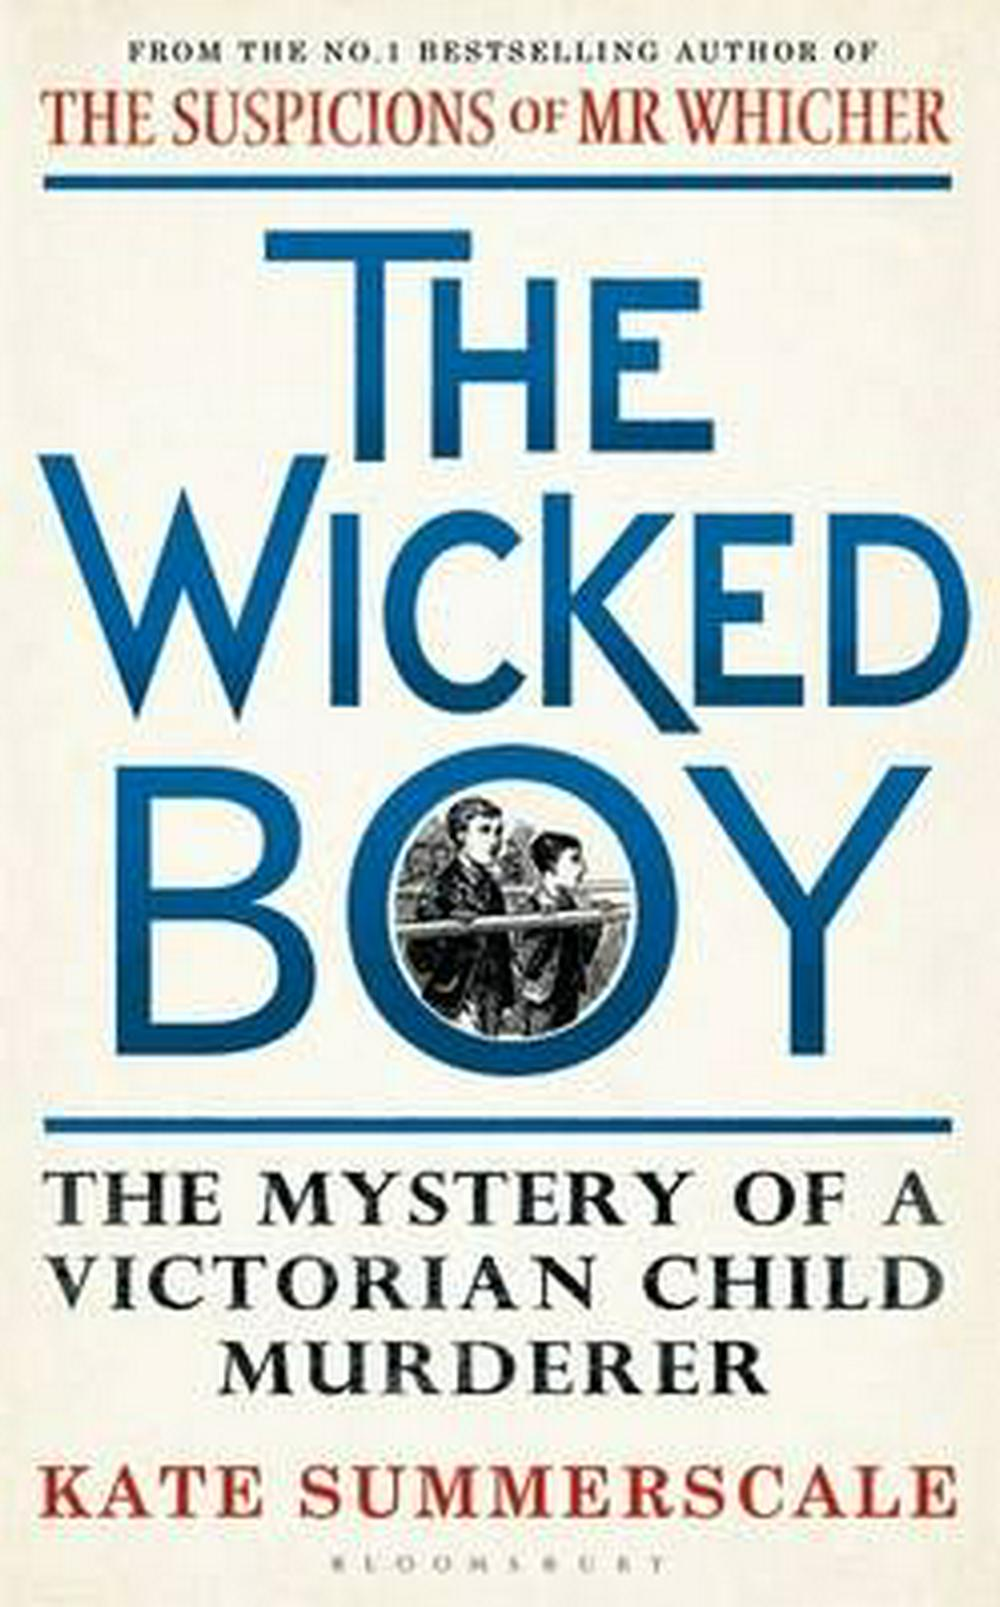 The Wicked Boy: The Mystery of a Victorian Child Murderer by Kate Summerscale, ISBN: 9781408851159